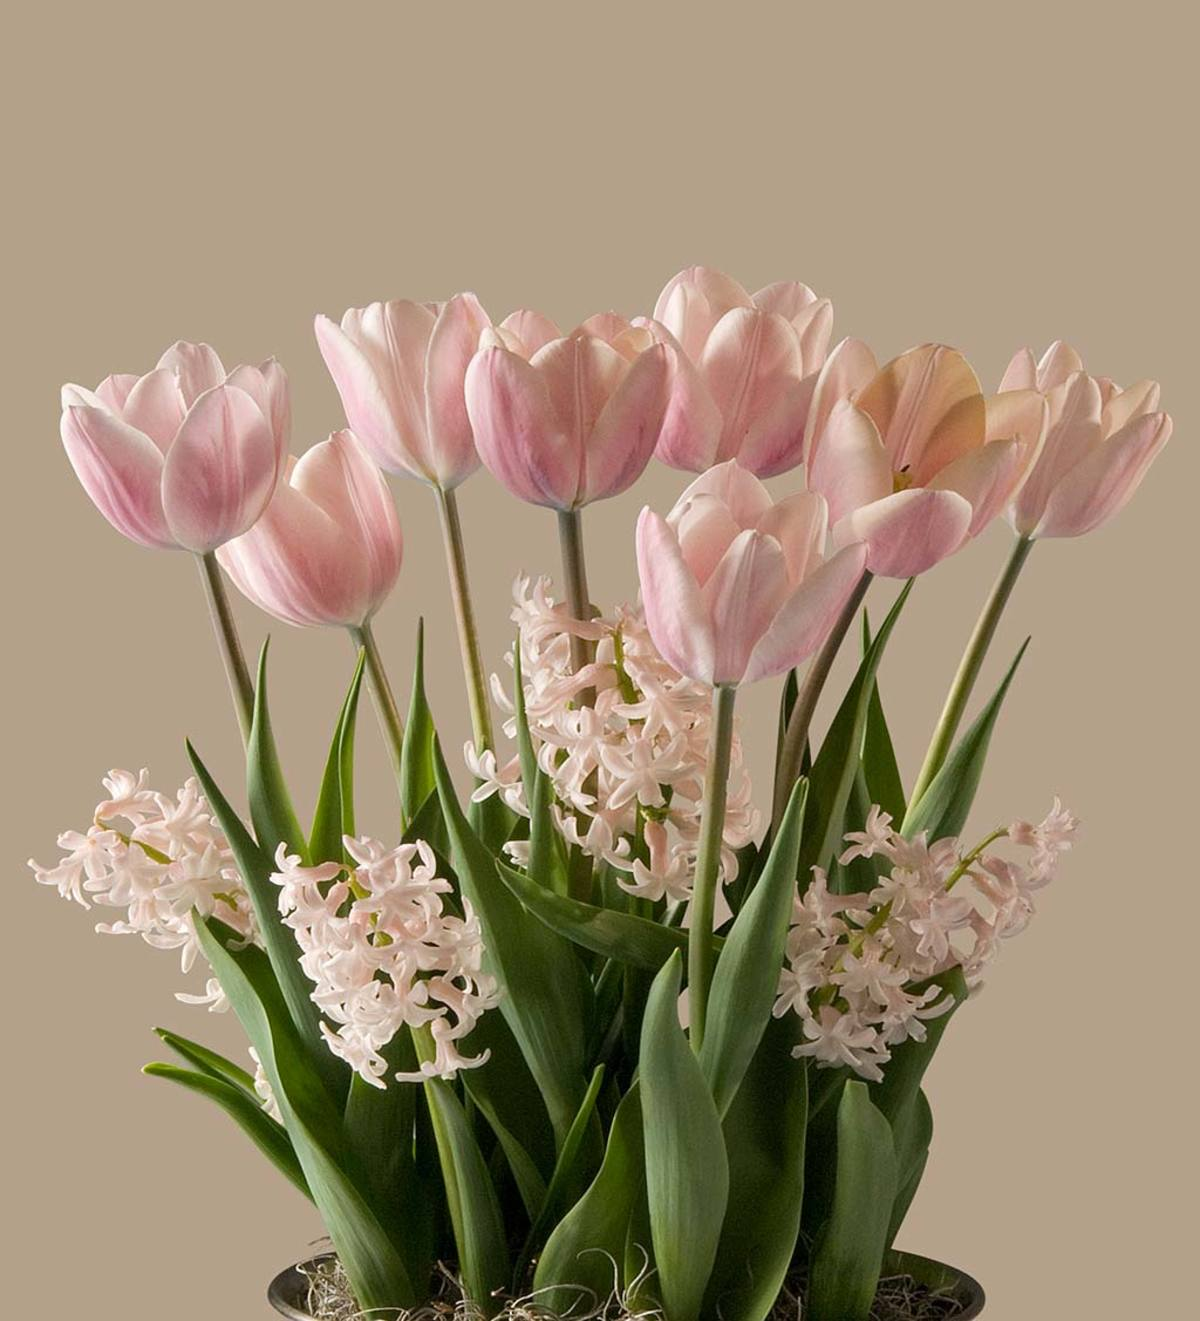 February Apricot Beauty Tulips & China Pink Hyacinths Bulbs in Seagrass Basket